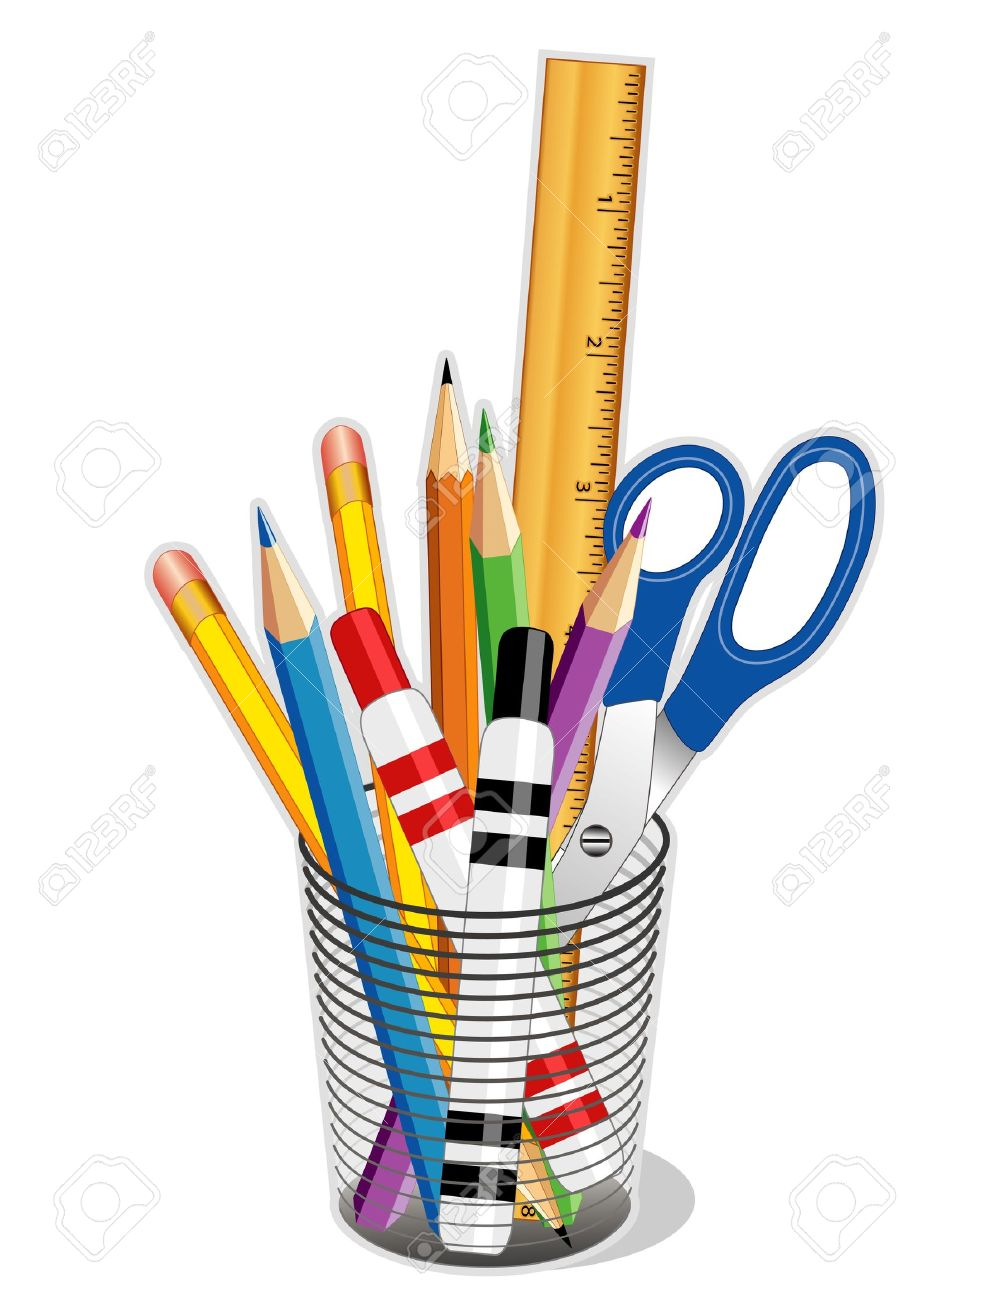 office drawing tools. Writing, Drawing Tools For Business, Home, Back To School. EPS10. Stock Office